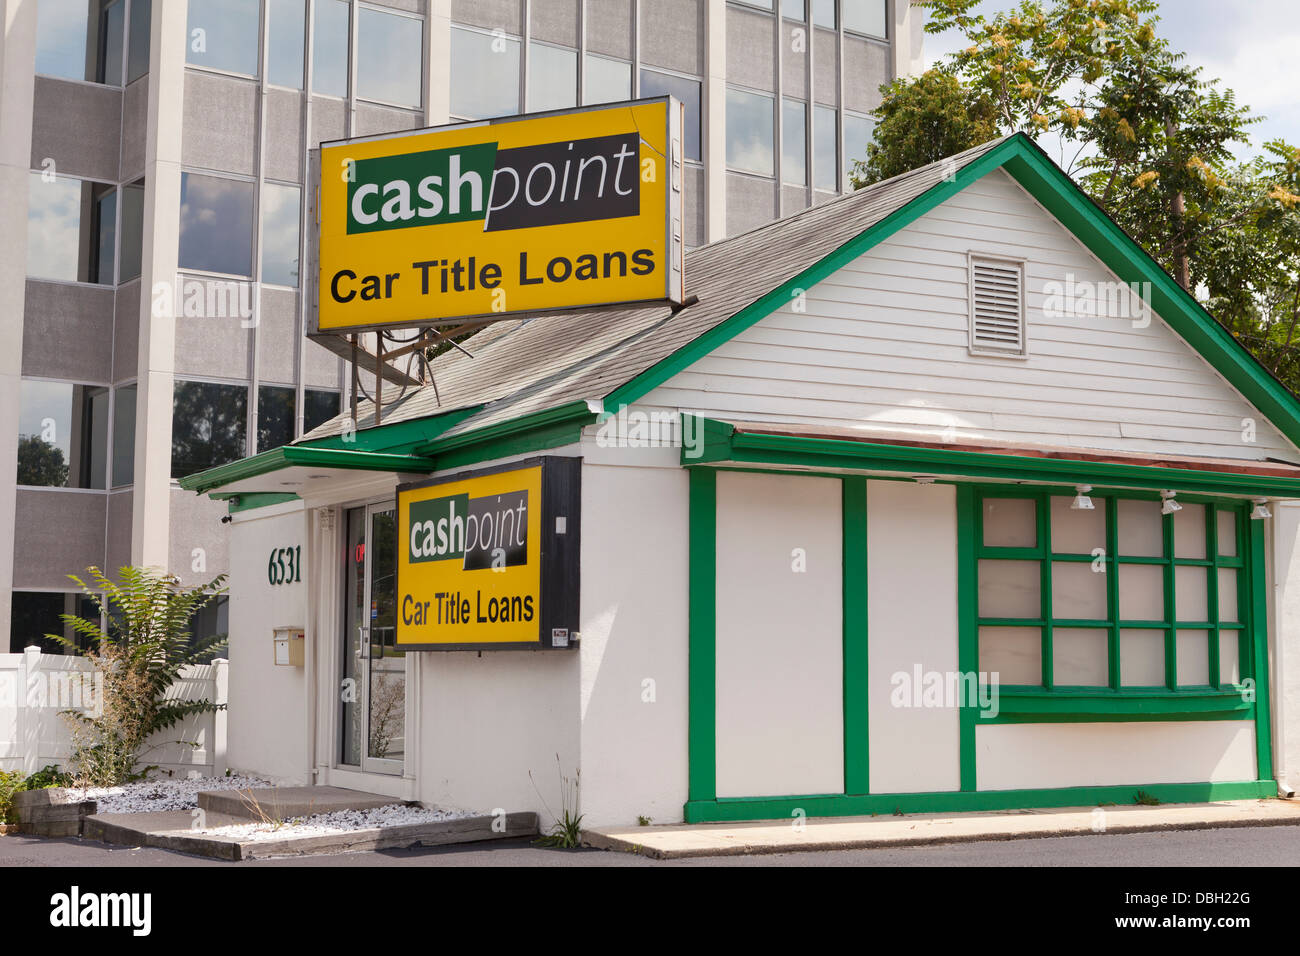 Cash Point Car Title Loans office - Stock Image